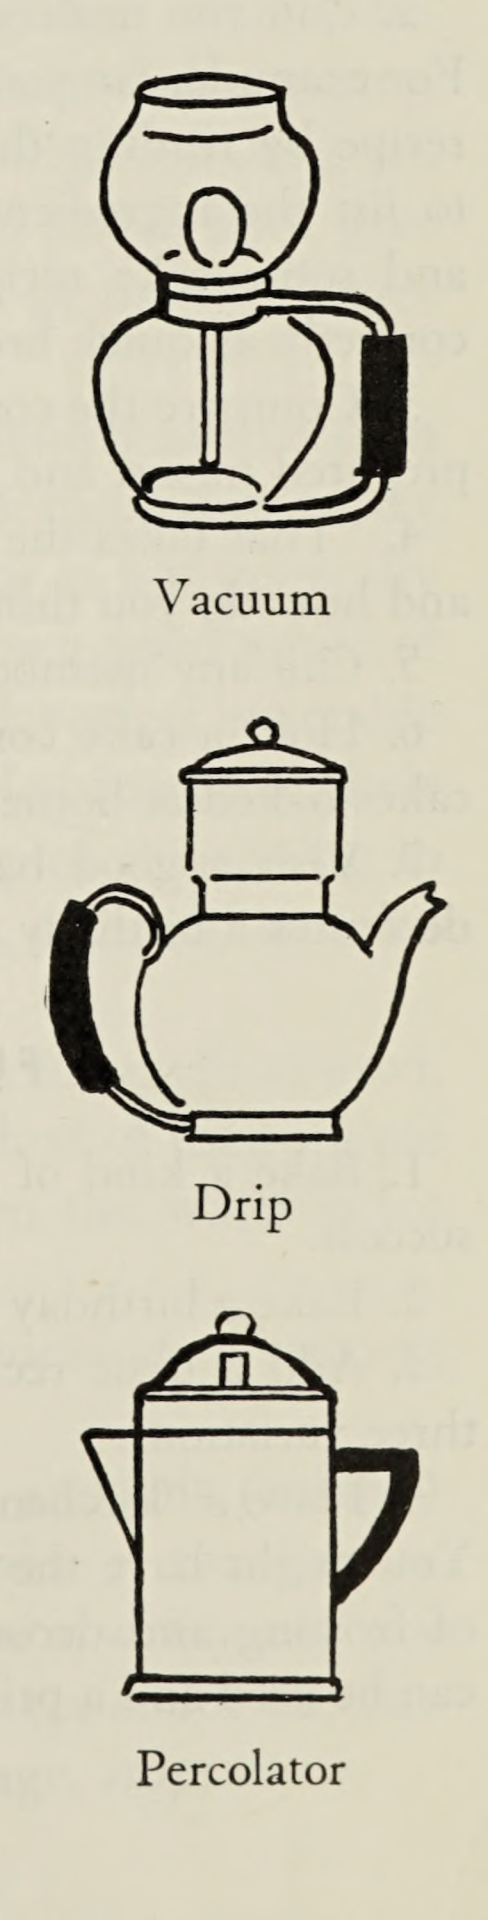 Coffee Pot Options Food For Better Living 1949 Internet Archive 1940 S 1949 Coffee Drip Economics Ho Coffee Pot Better Living Cottage Kitchen Design